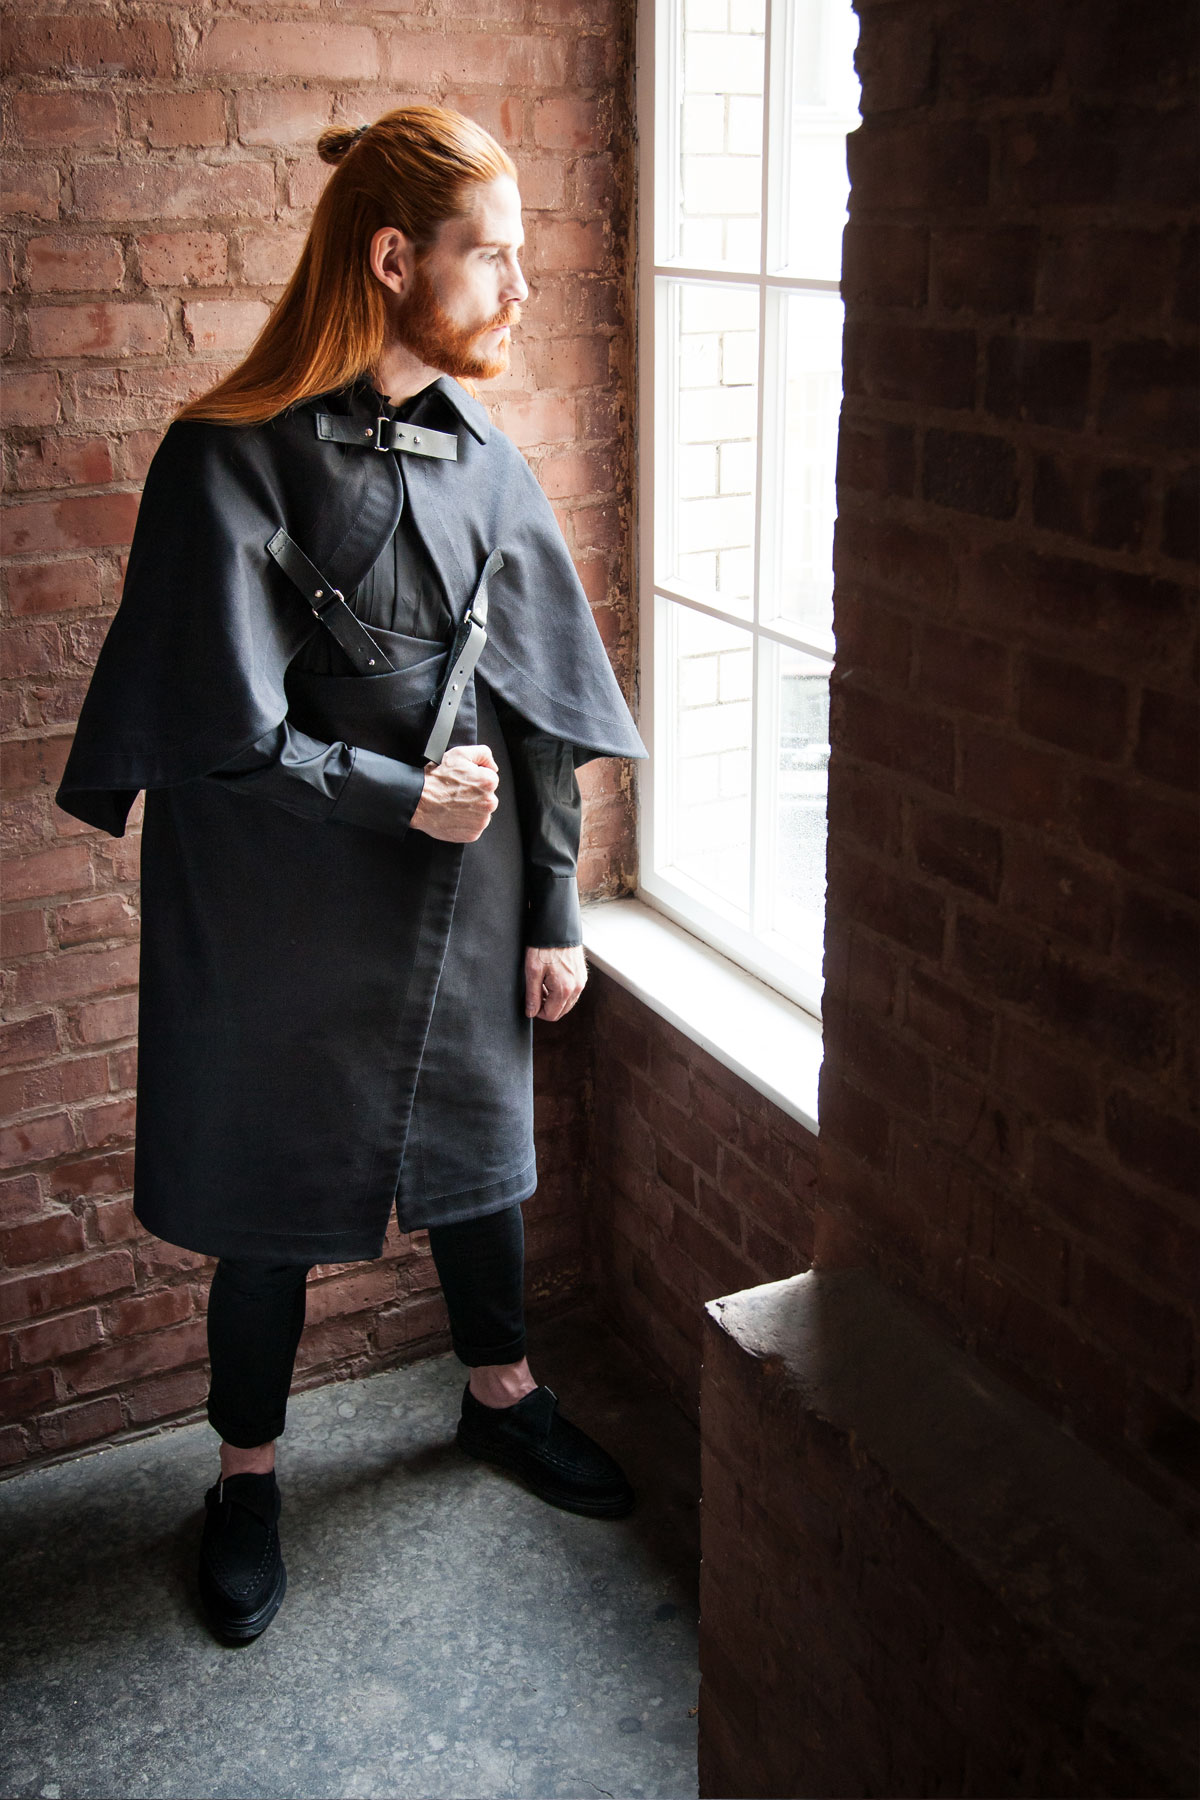 Esther-Perband-Avantgarde-Malefashion-Unisex-Ginger-Hair-Winterkollektion